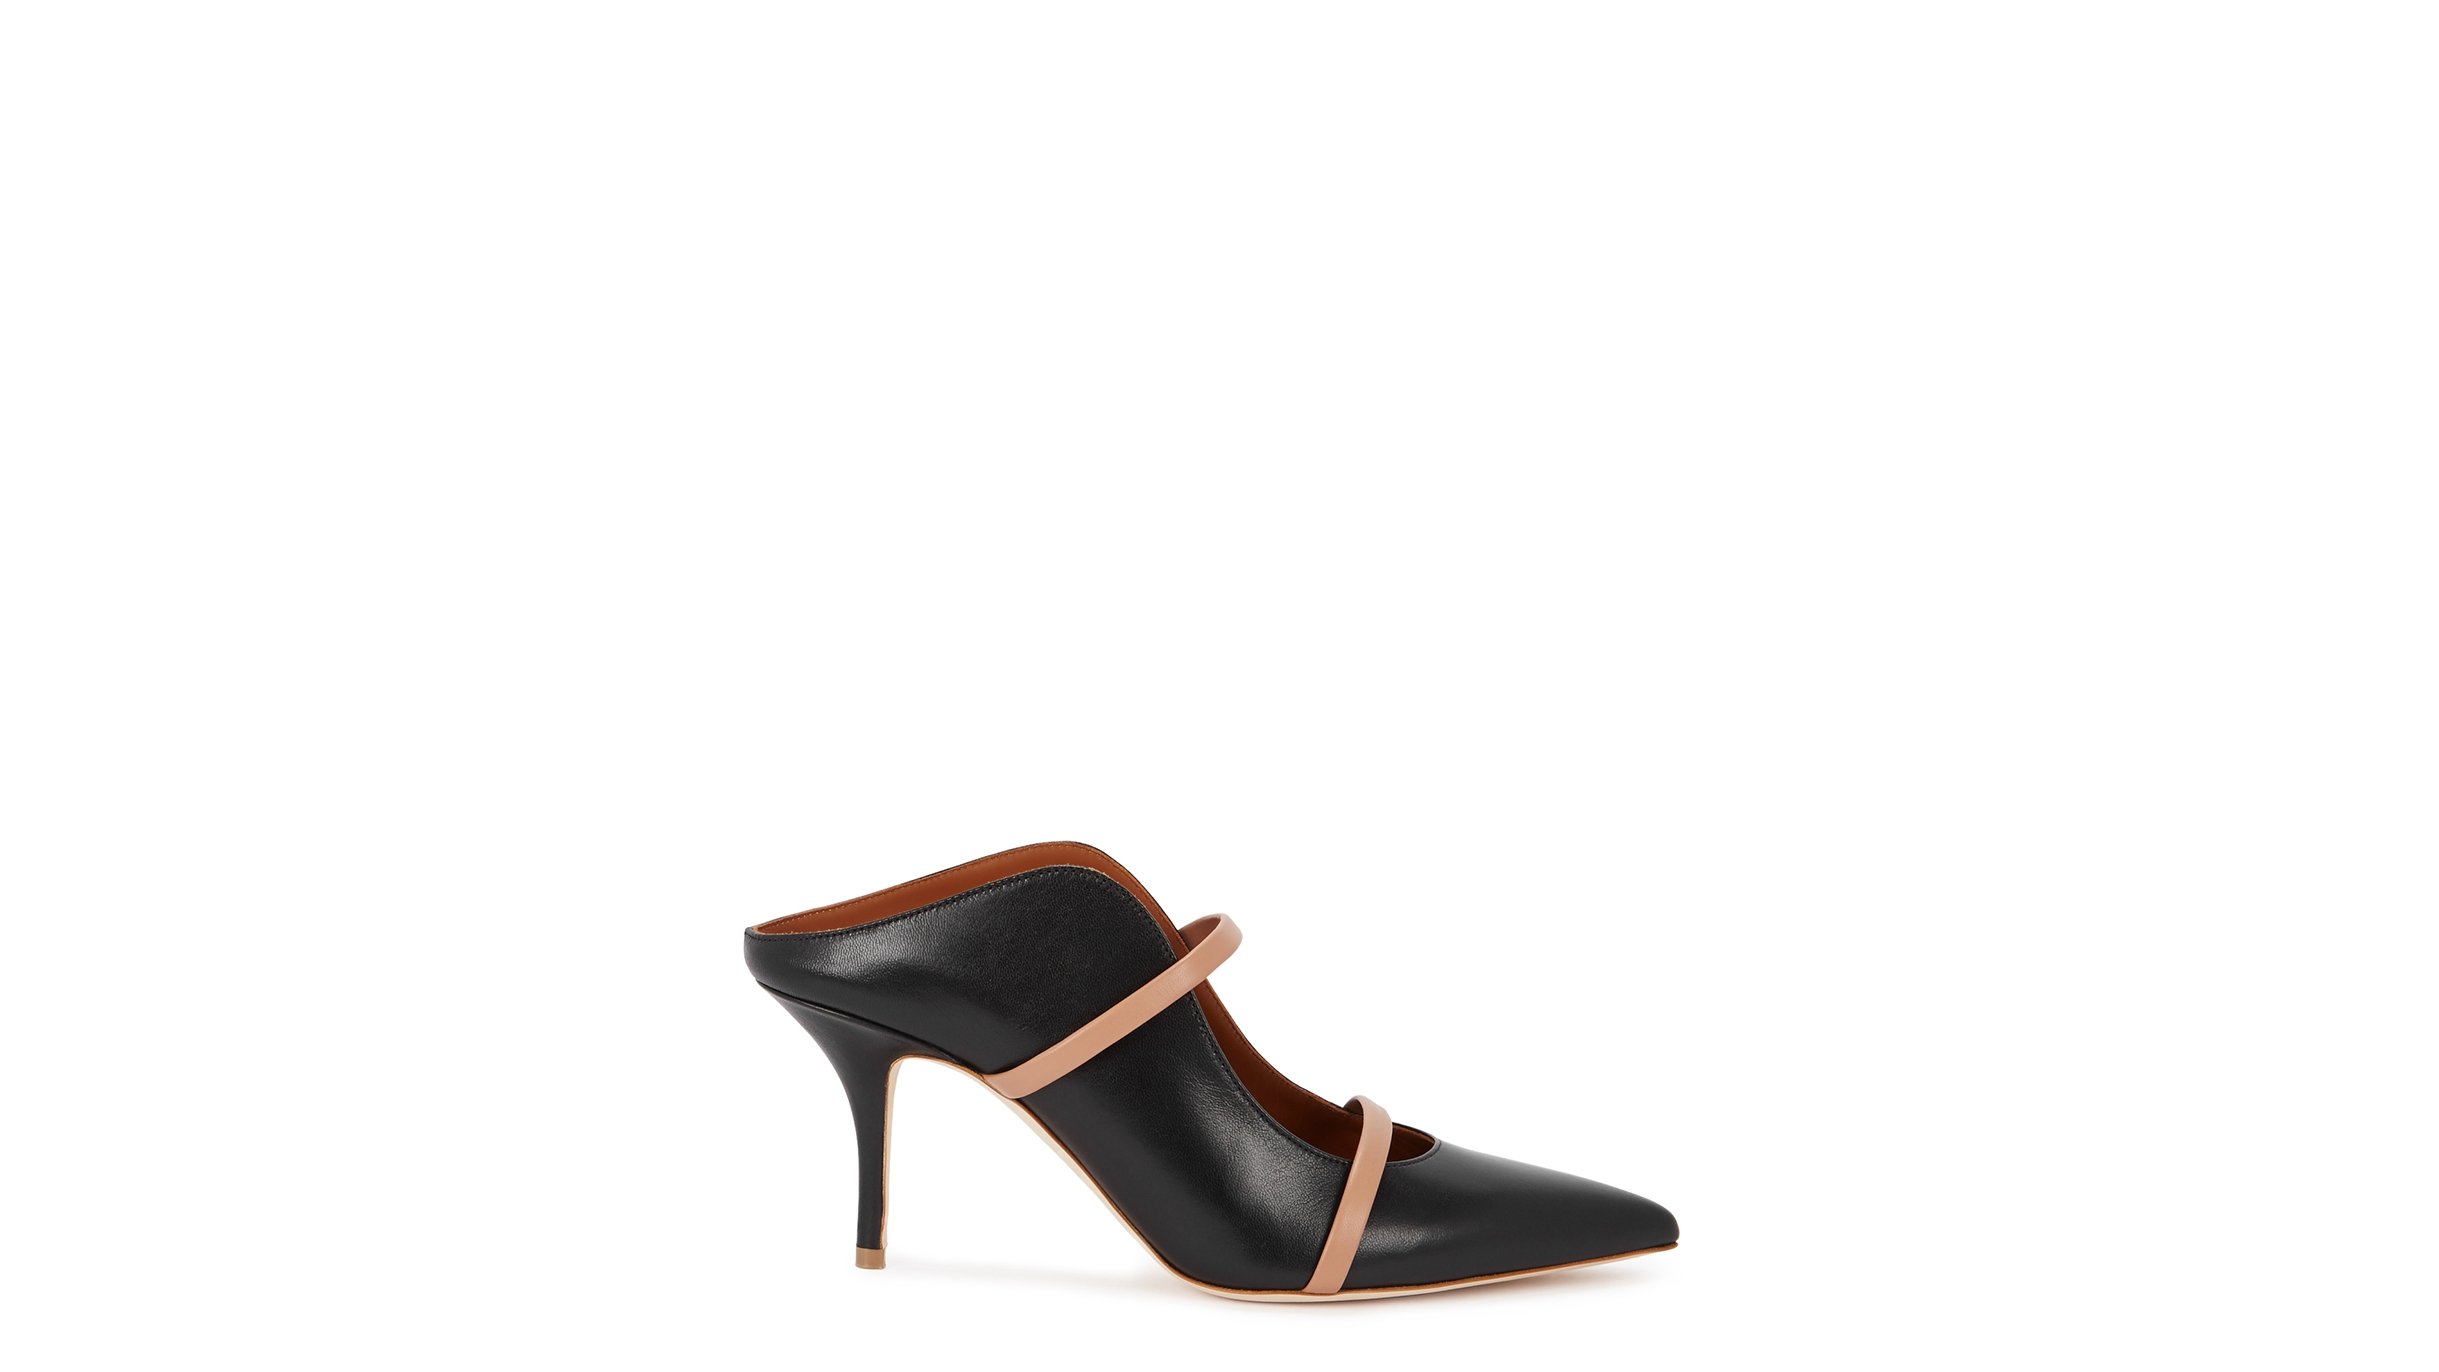 00fcaaa609a8 Malone Souliers Maureen 70 black leather mules - Harvey Nichols